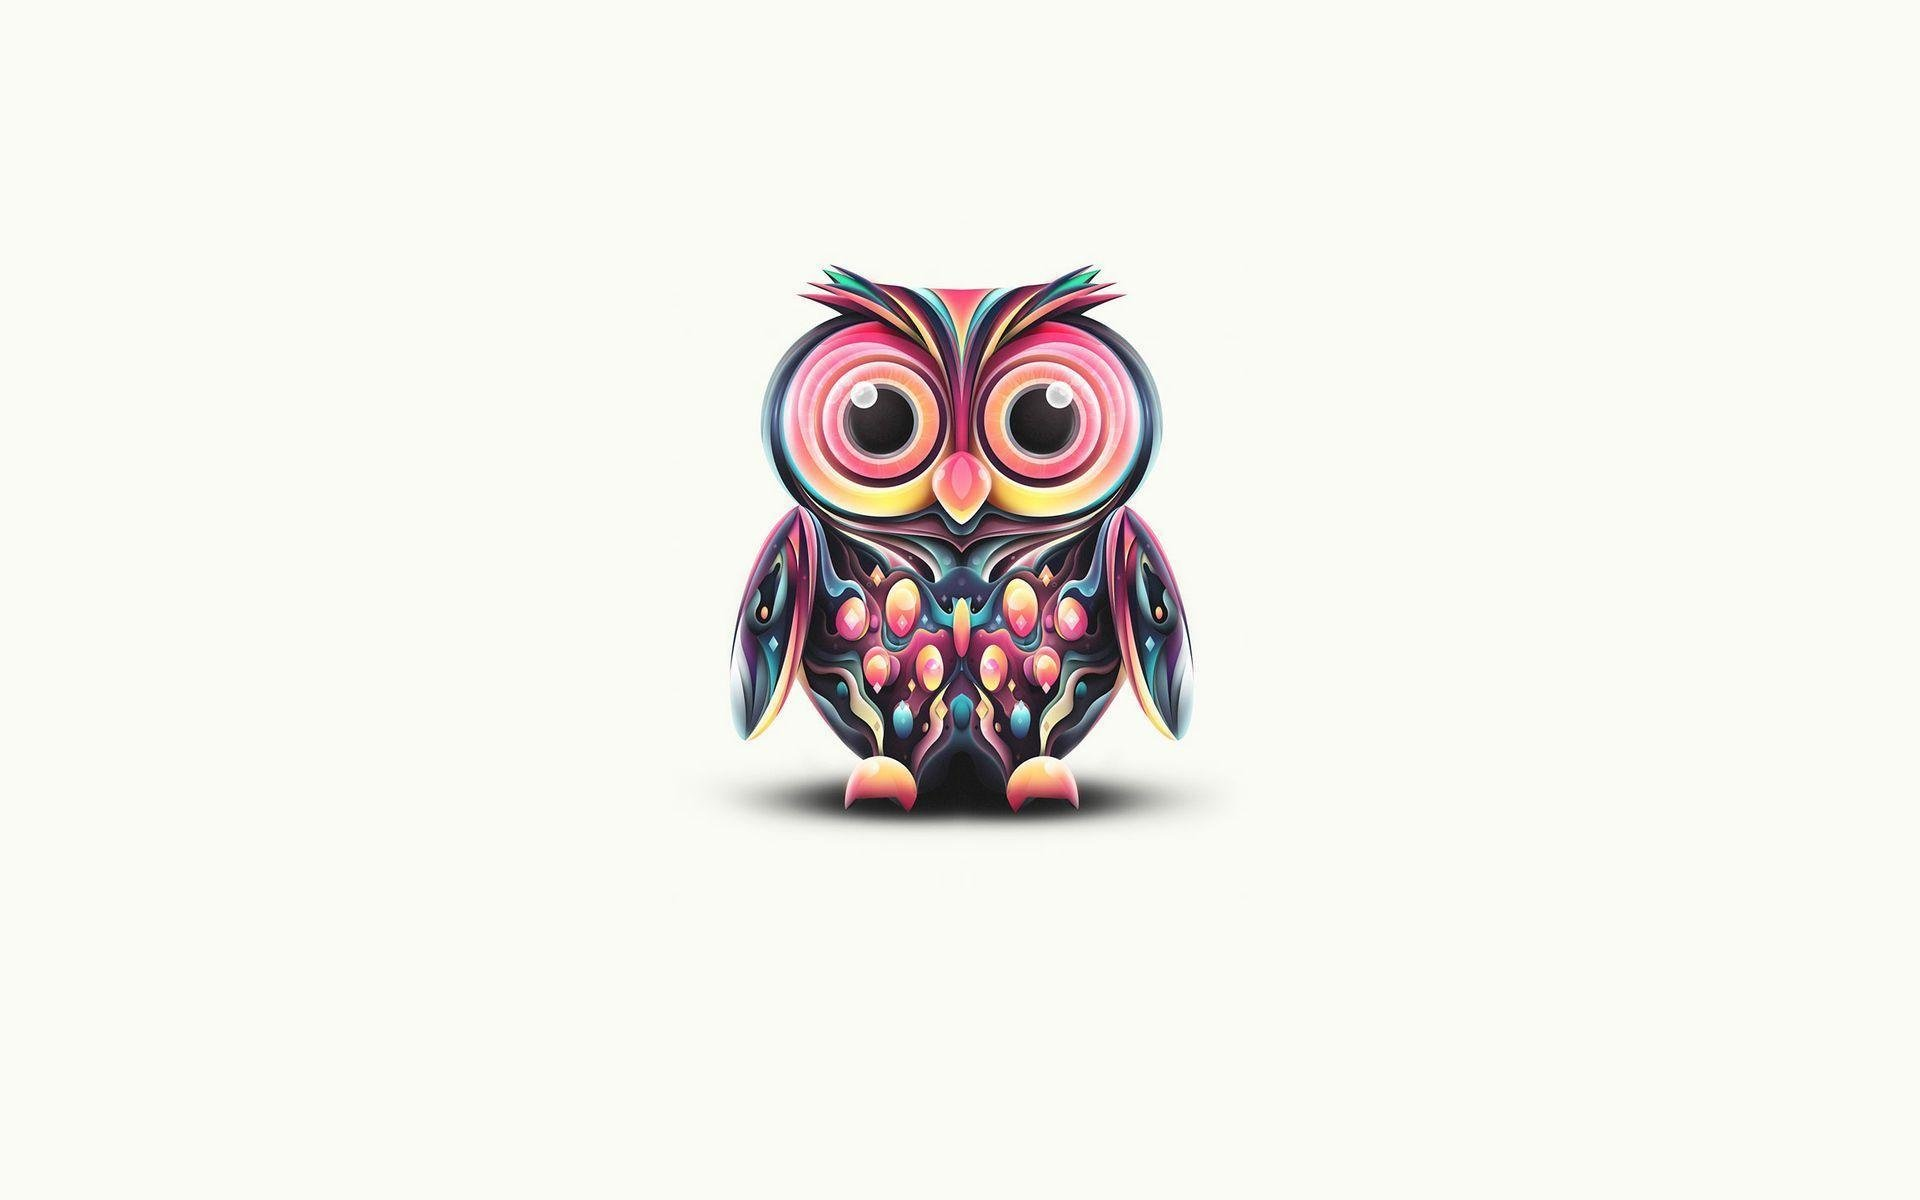 Owl Wallpapers - Full HD wallpaper search